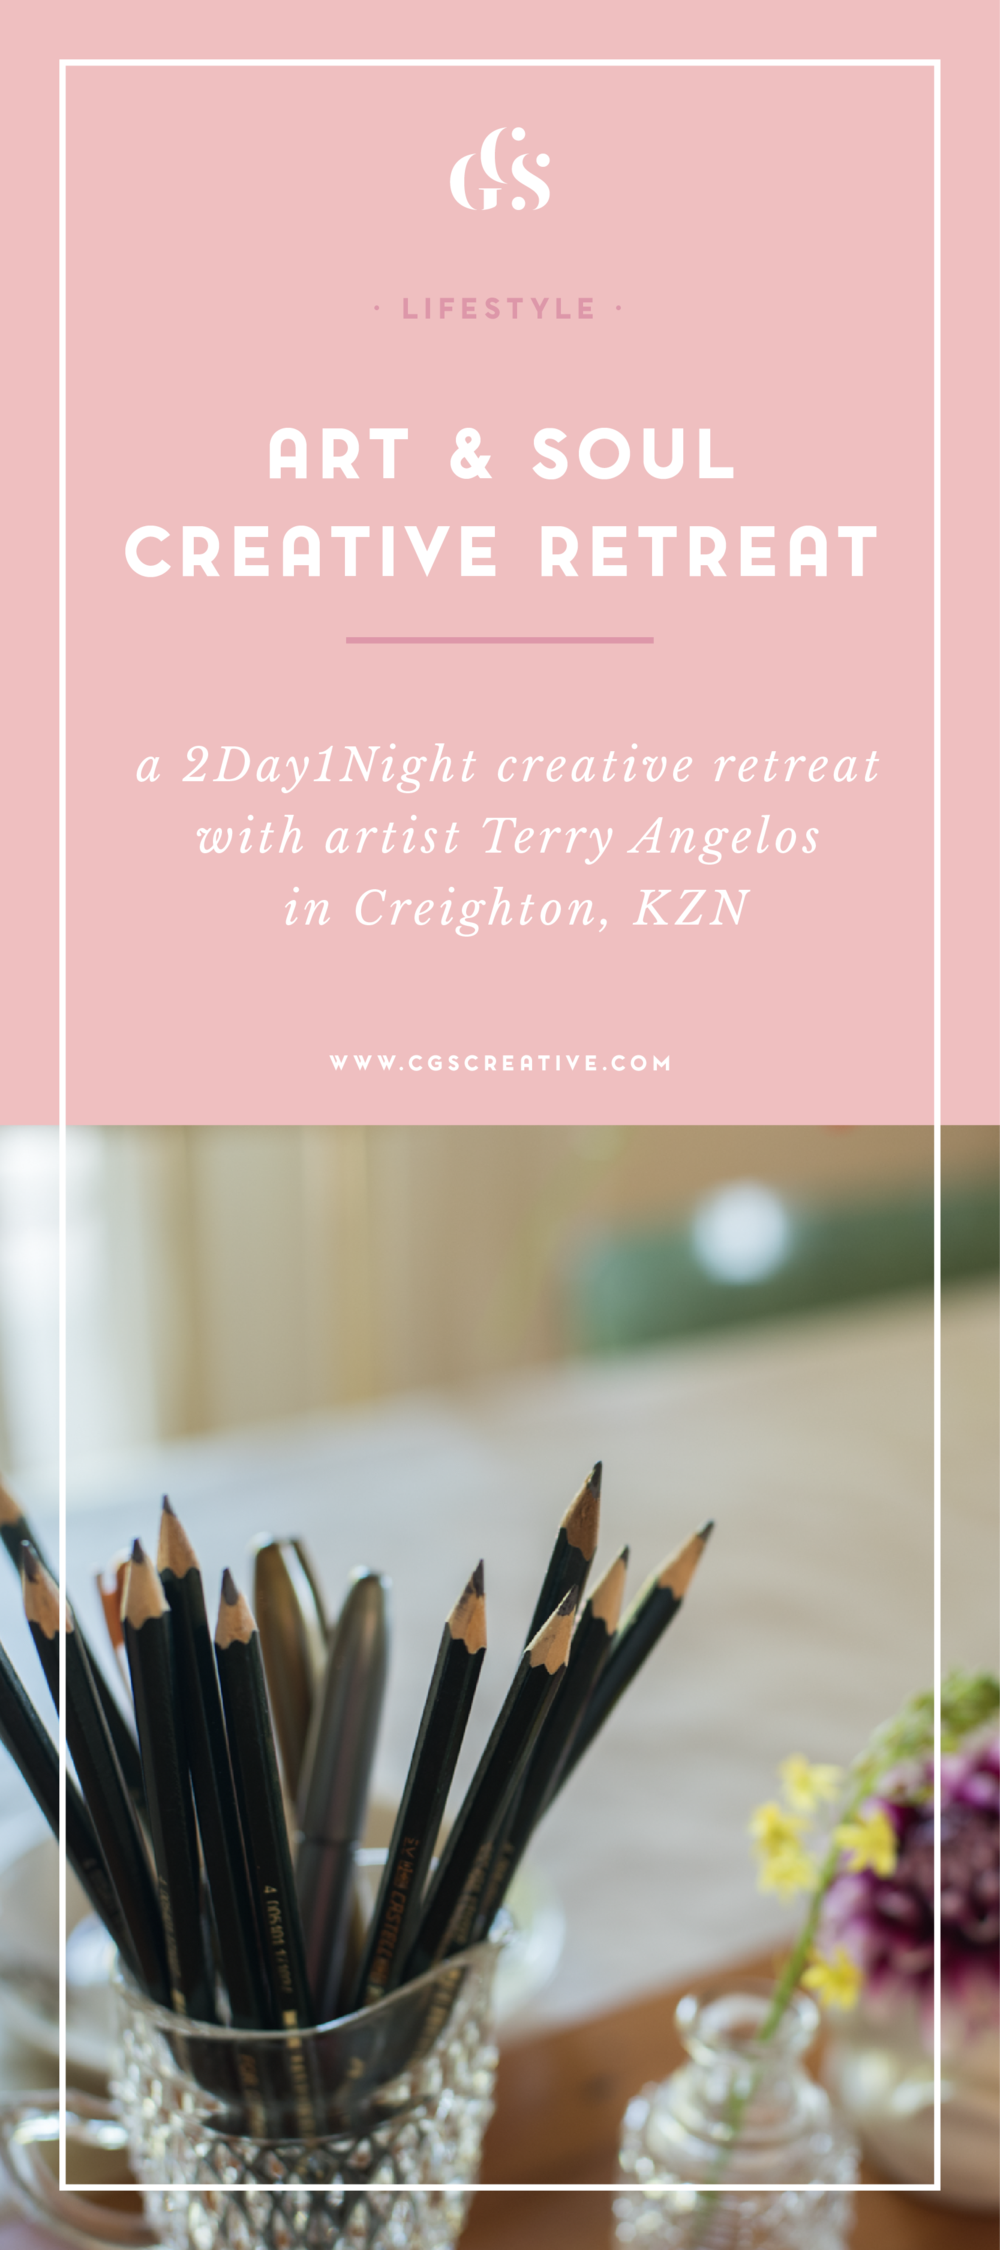 2Day1Night Art & Soul Retreat with Terry Angelos & Roxy Hutton in Creighton KZN_Artboard 3.png